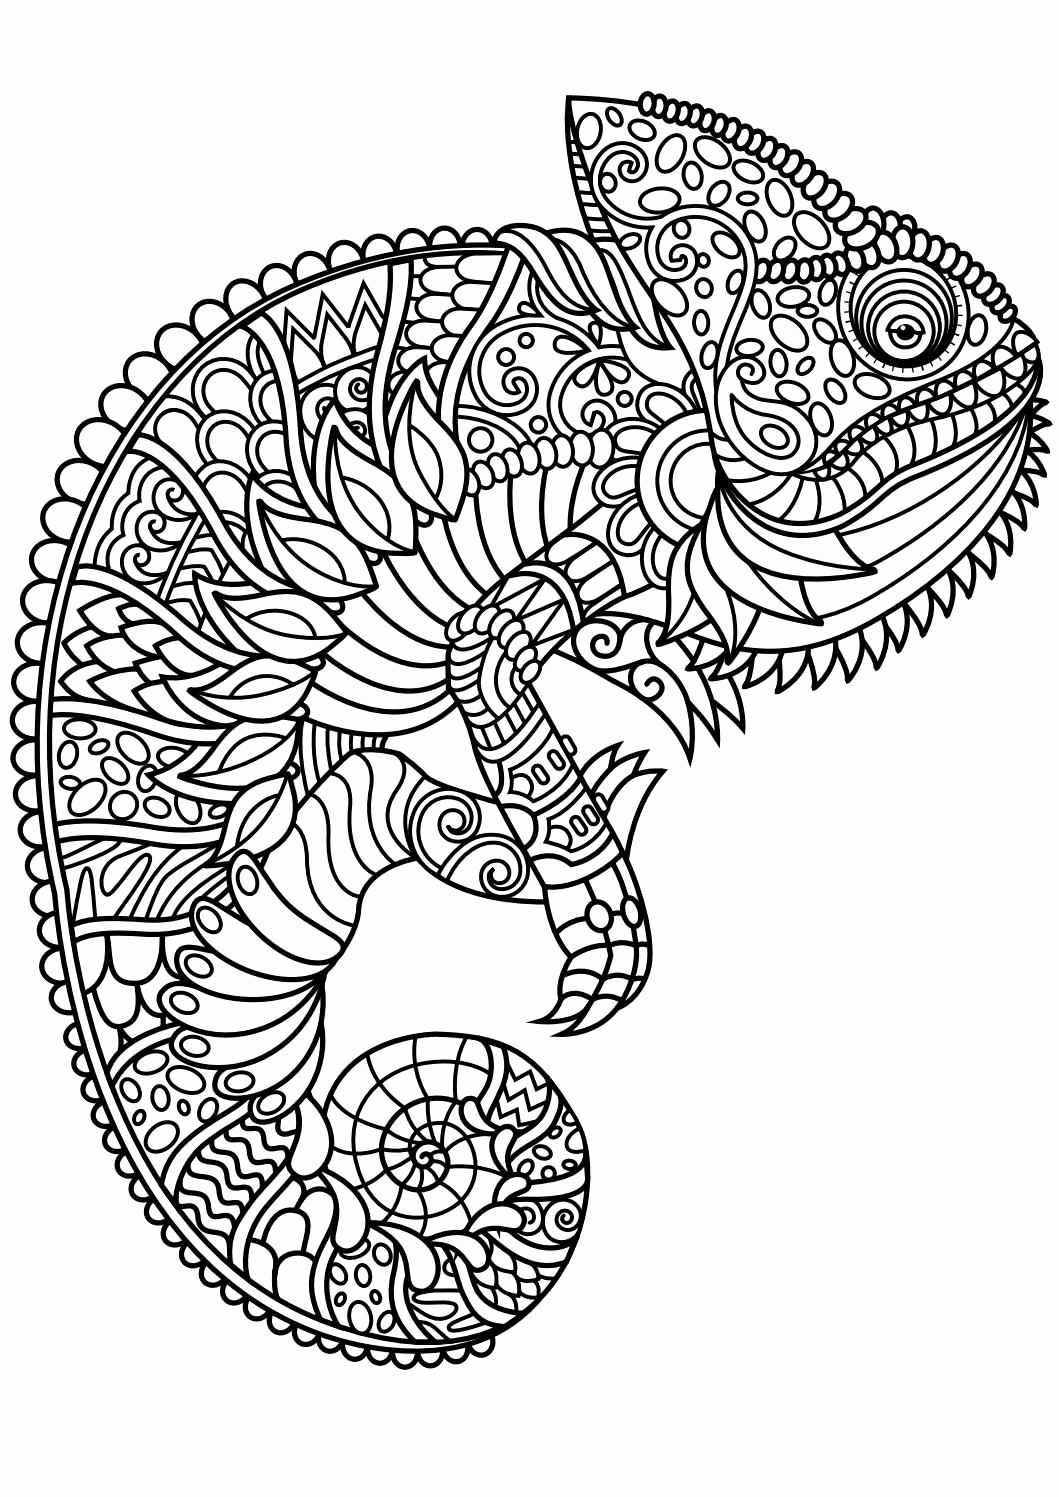 Animal Pictures to Color Awesome Animal Coloring Pages Pdf Coloring Animals